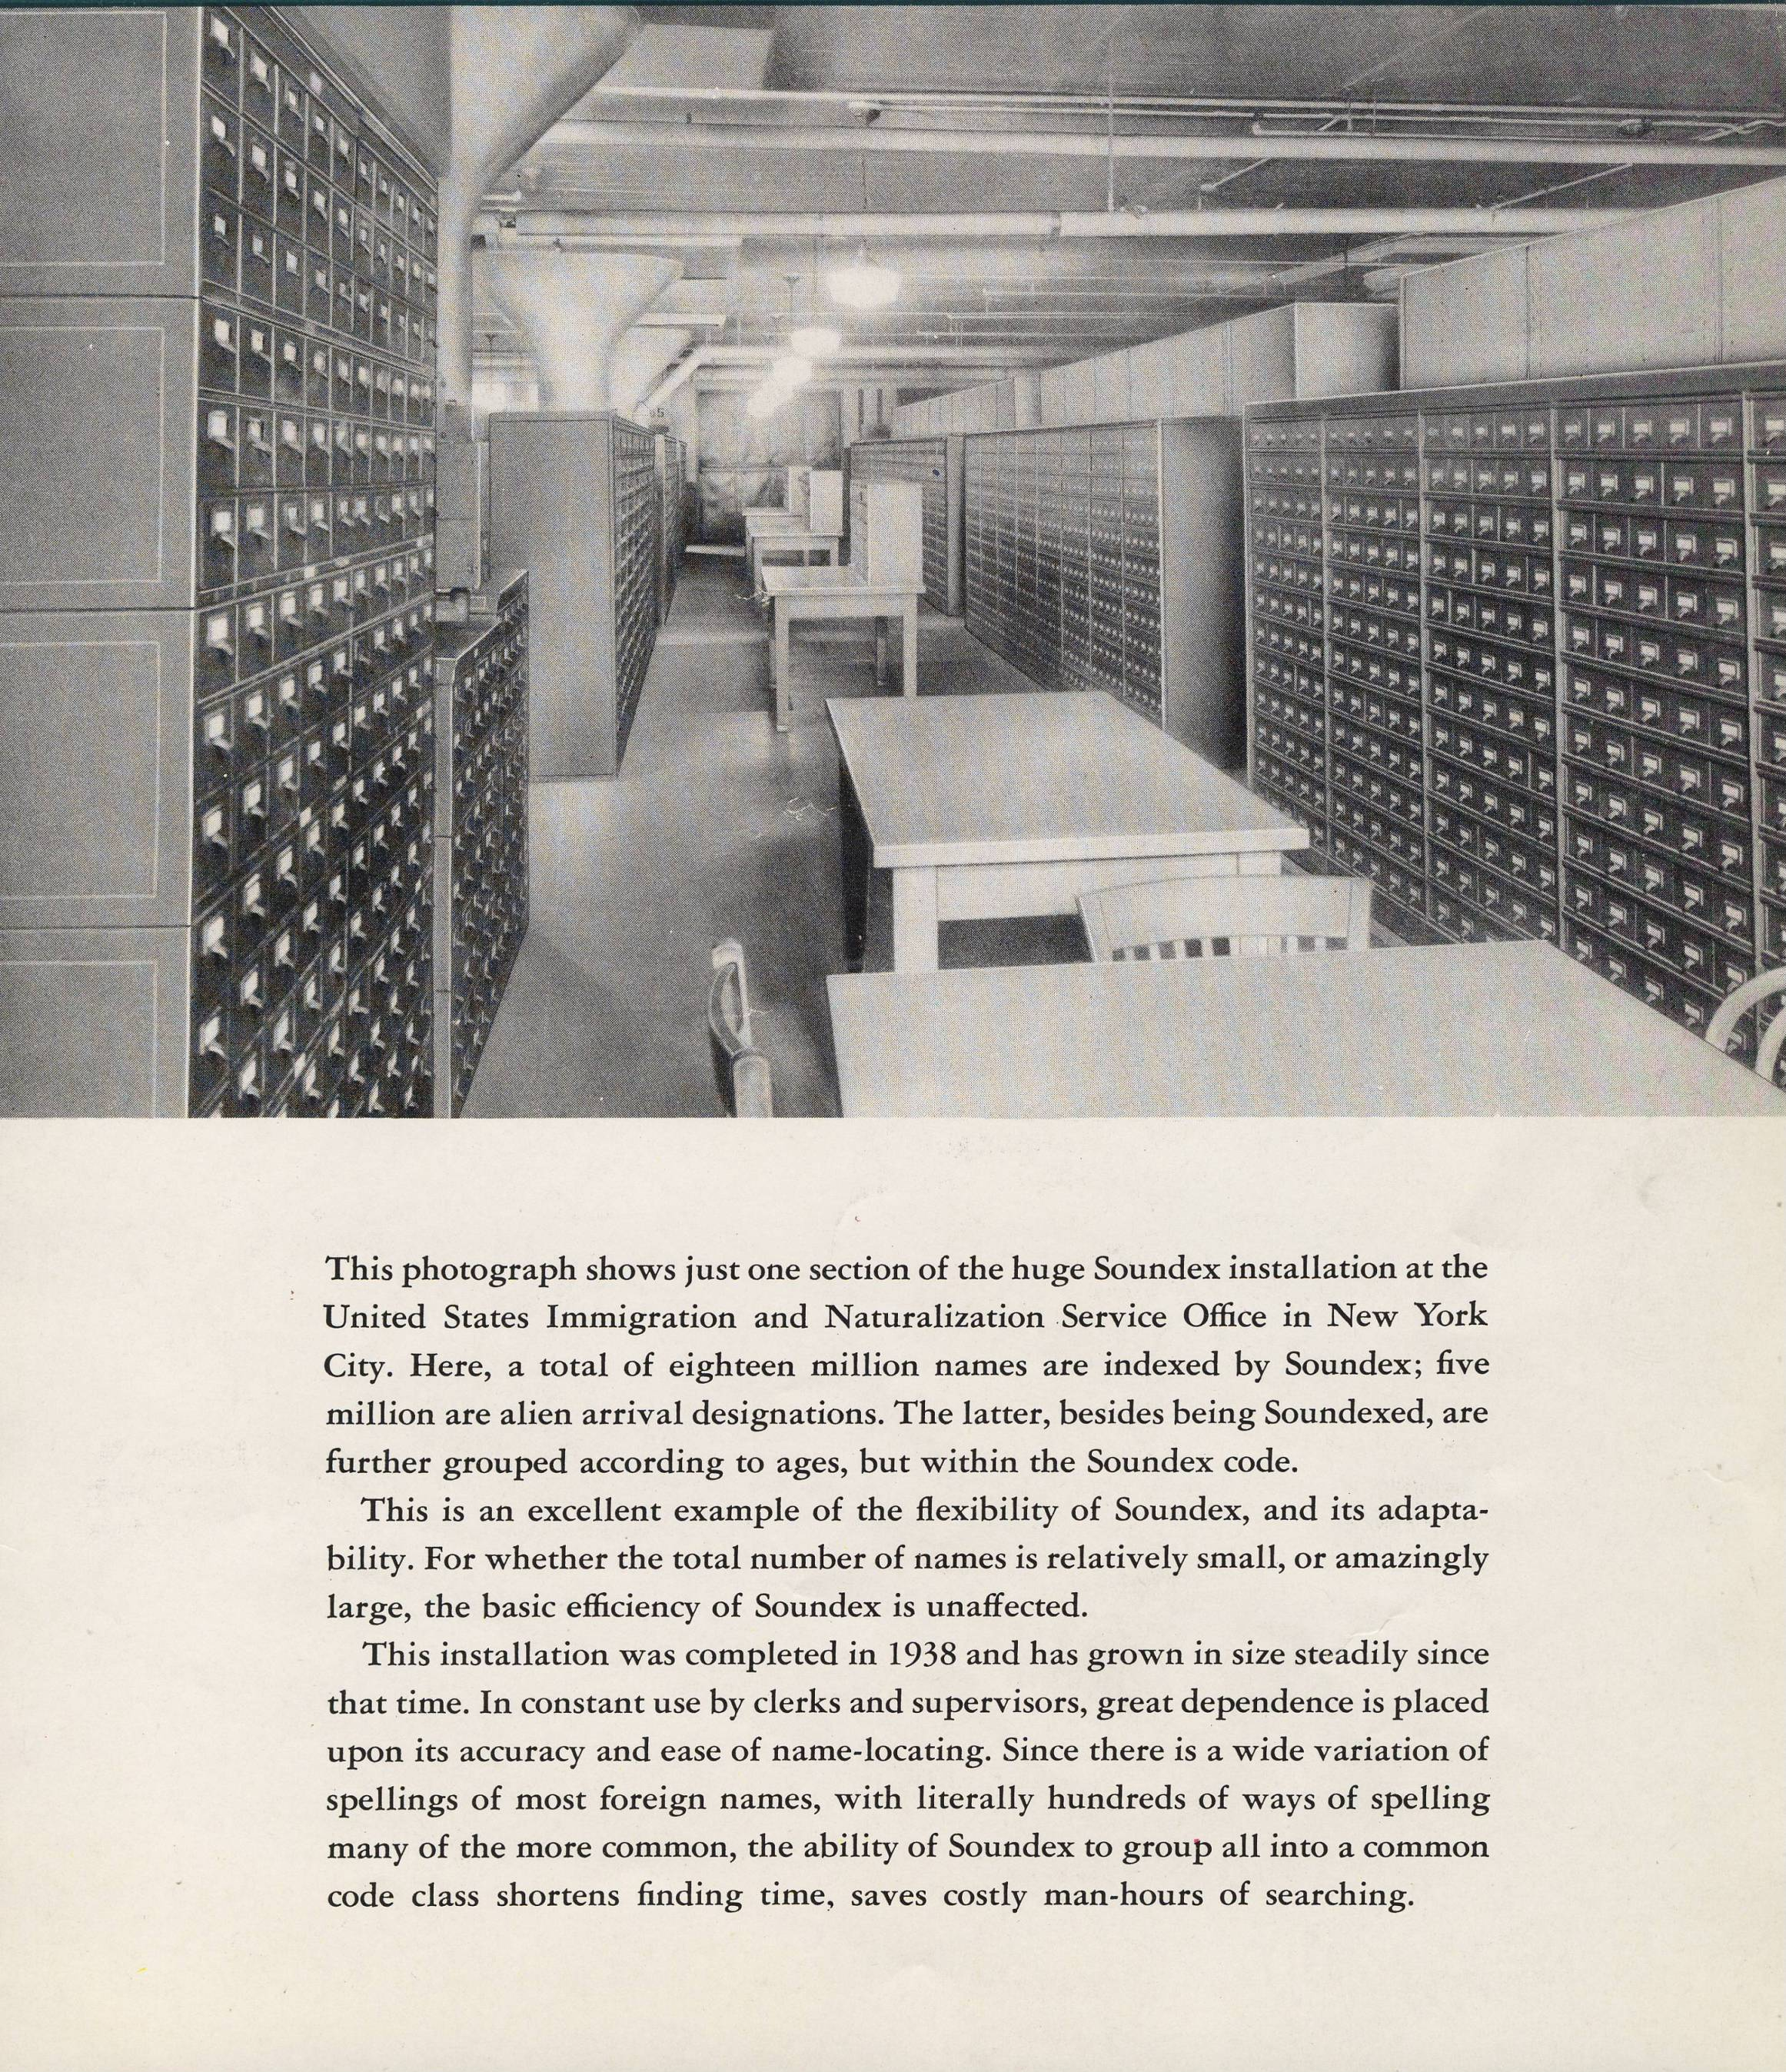 INS Office with Soundex System, from Catalog - RG 64, P 169, file Policy - Referral of Letters to INS.jpg